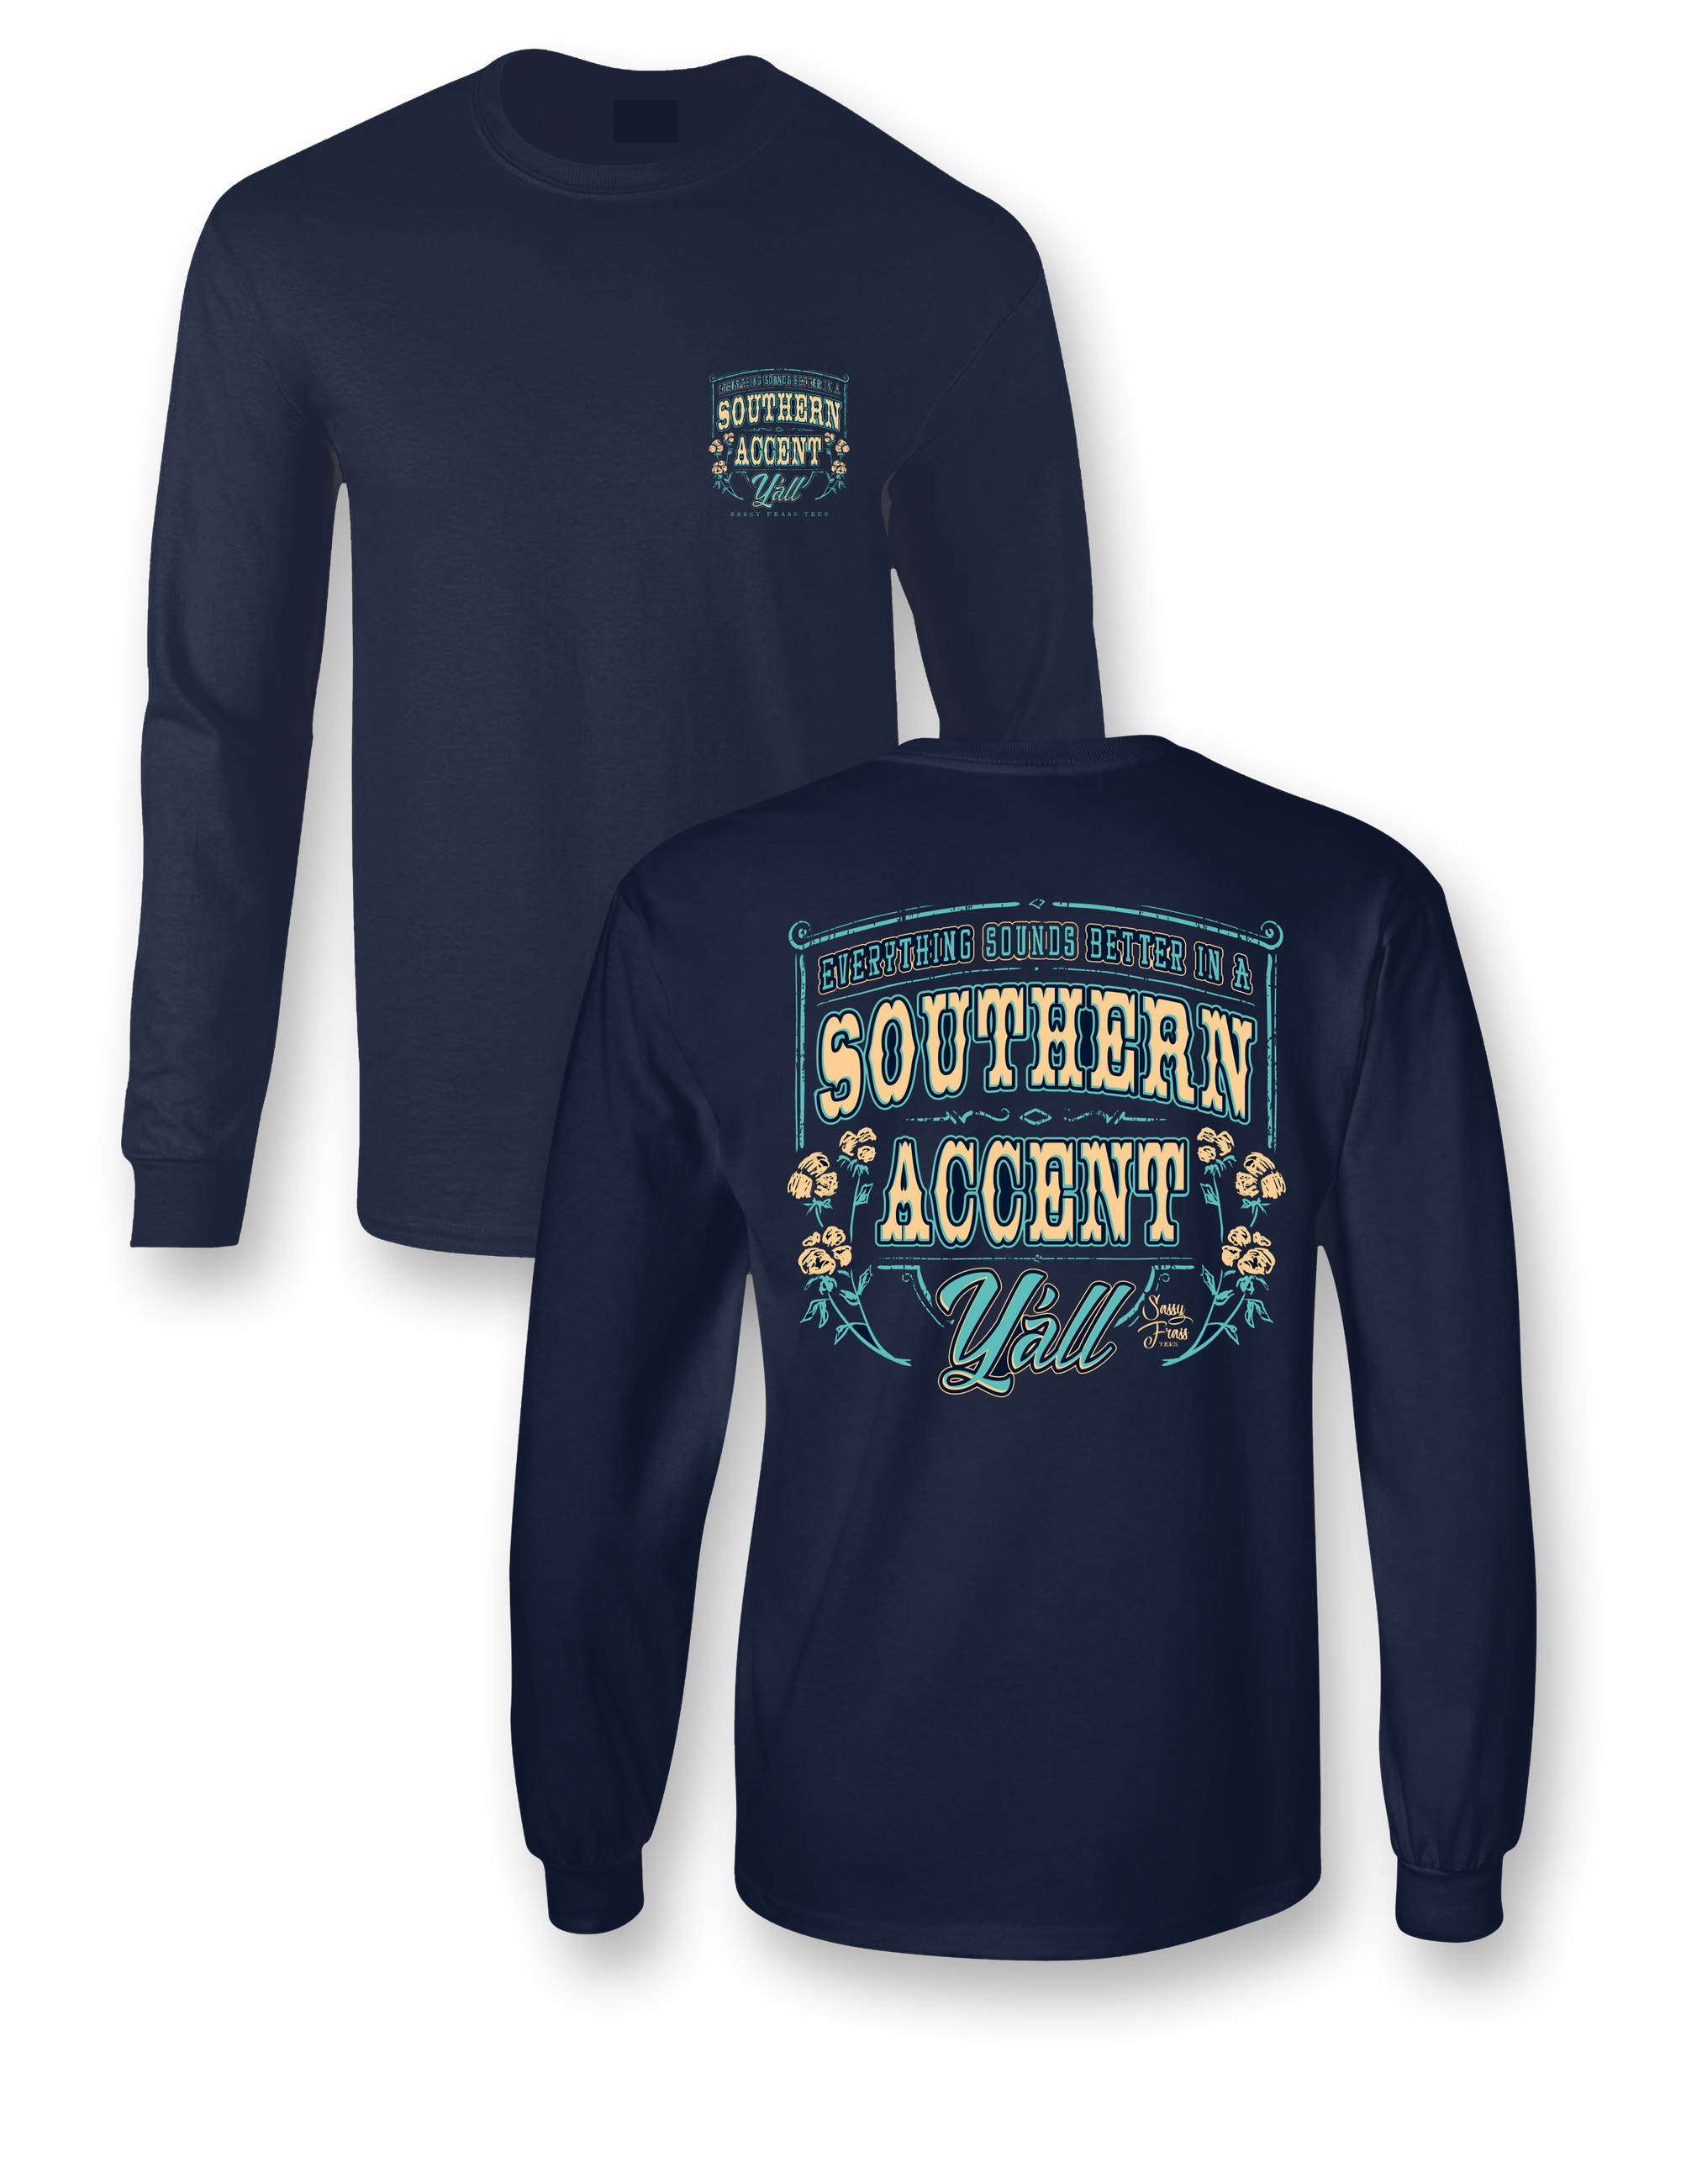 Sale Sassy Frass Everything Sounds Better in Southern Accent Y'all Long Sleeve Bright Girlie T Shirt